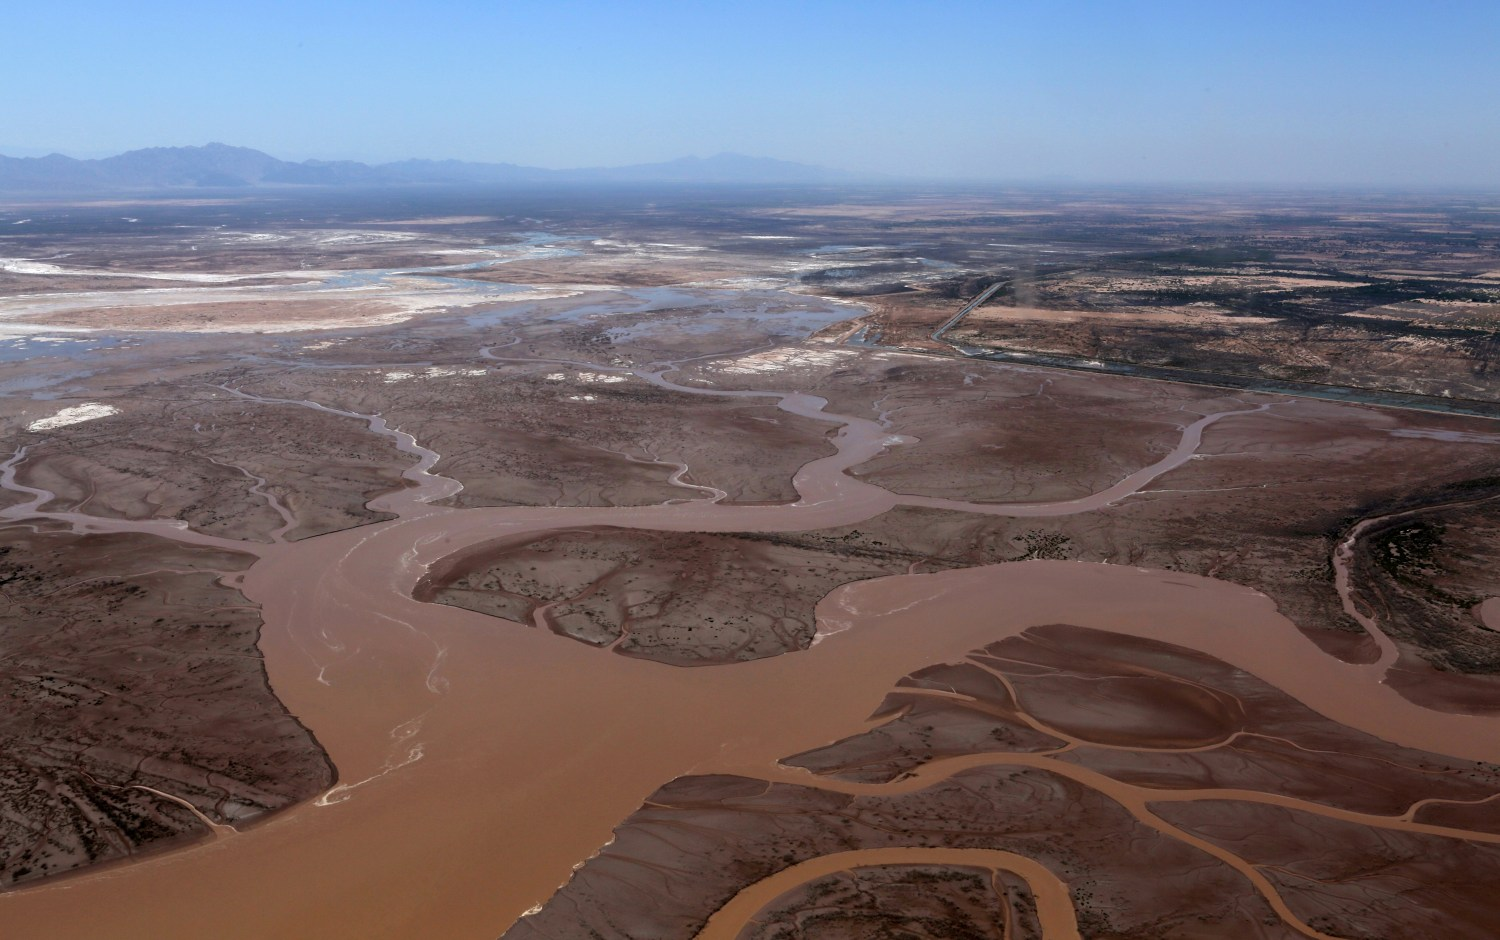 Water from the Colorado River flows into the Gulf of California in this photo taken on May 23, 2014. The short-term flush of water, which took place over eight weeks, had lasting ecological and social effects. Photo courtesy of Francisco Zamora/Sonoran Institute